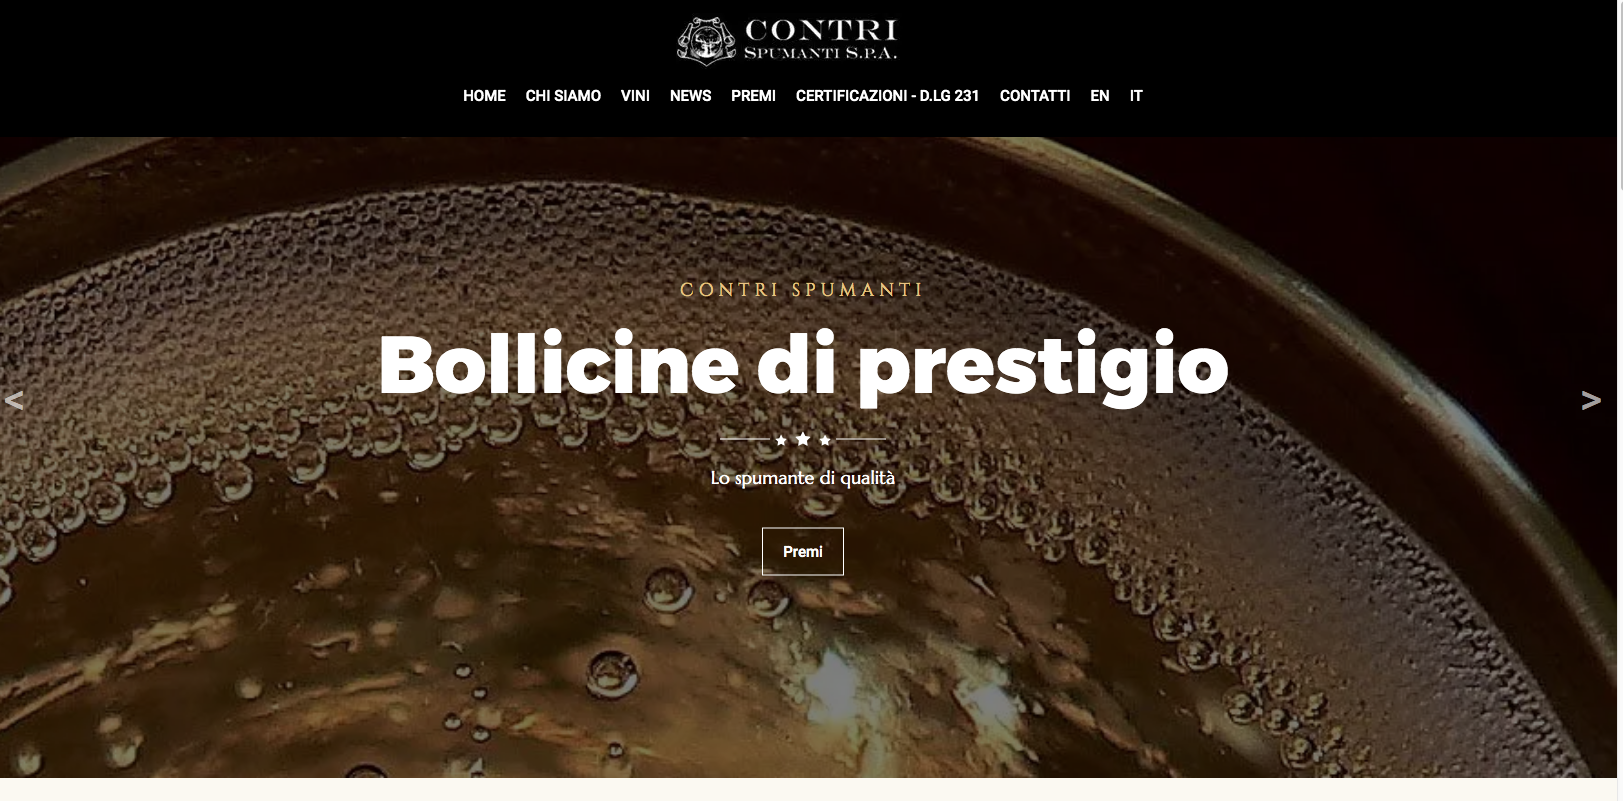 Restyling di CONTRI SPUMANTI SPA